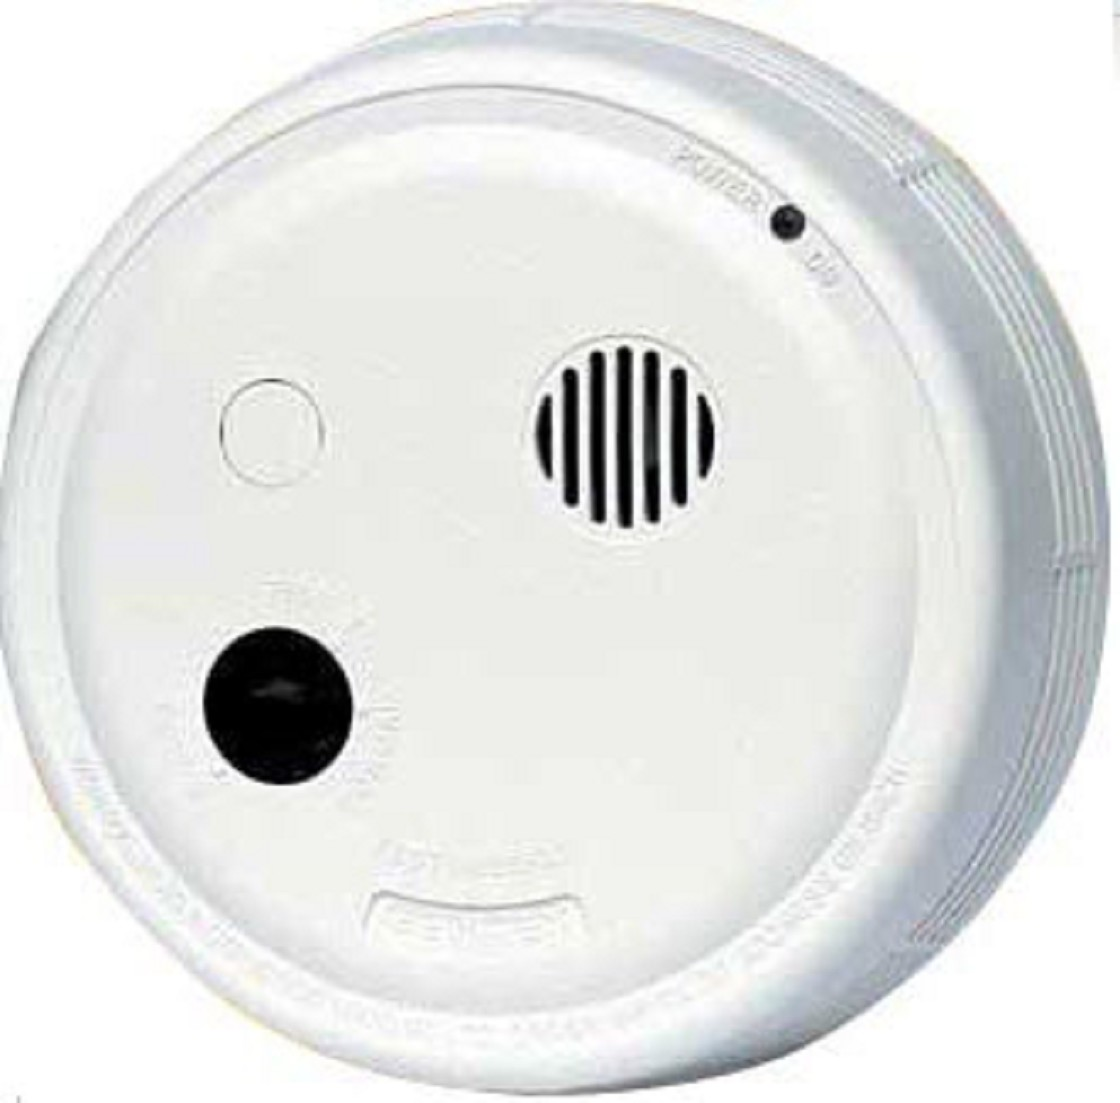 gentex hard wired smoke alarm. Black Bedroom Furniture Sets. Home Design Ideas